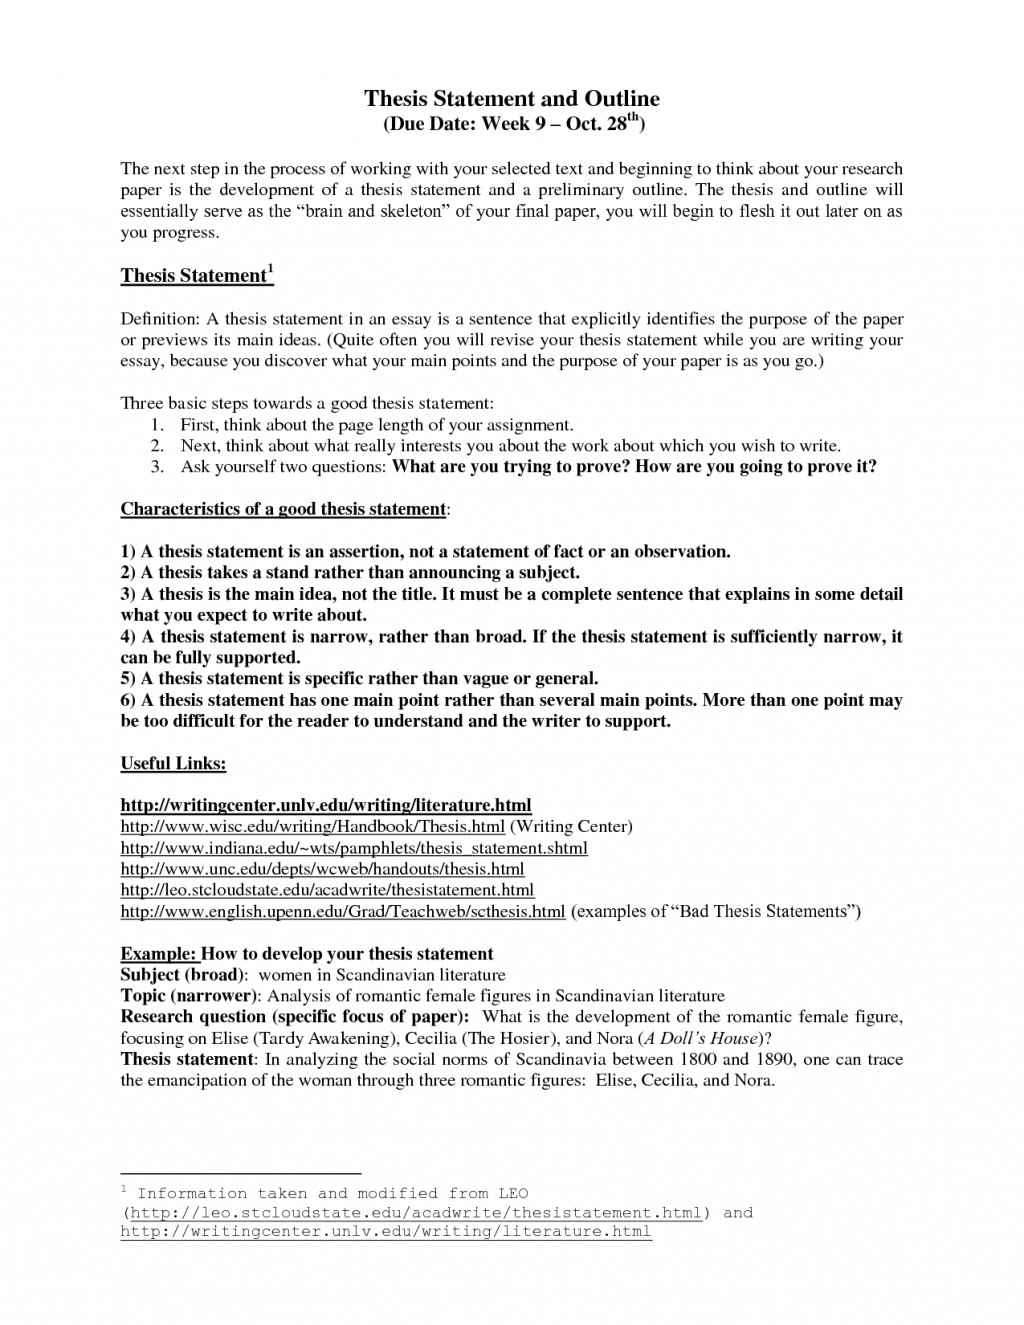 008 Thesis Statement And Outline Template Wx8nmdez How To Start Research Paper Outstanding A Examples Off Write Acknowledgement In Introduction Large